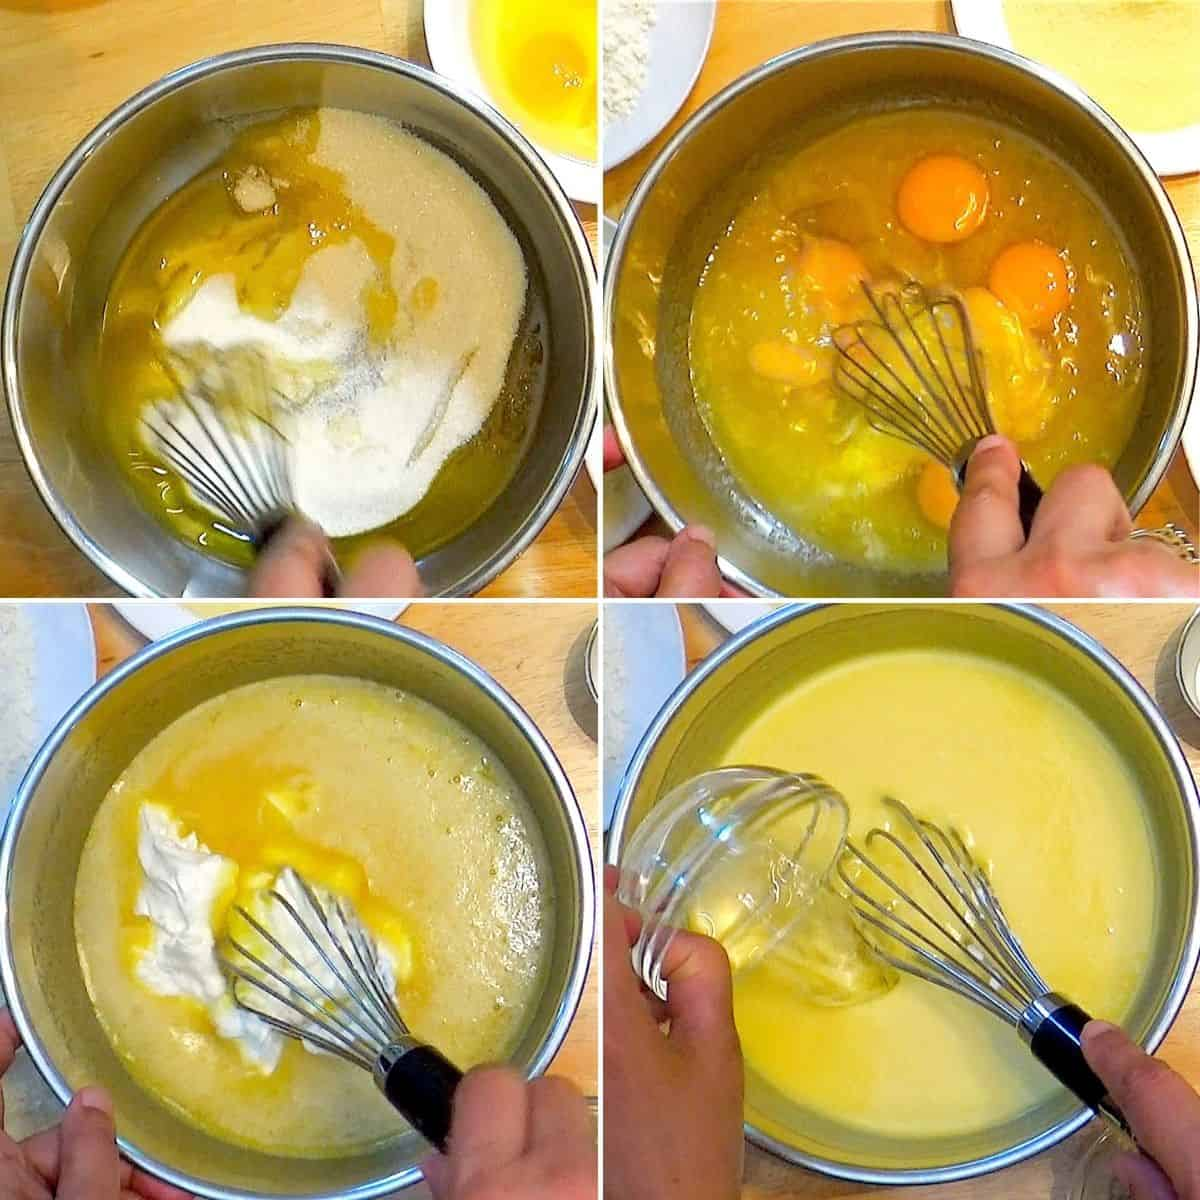 Creaming ghee, sugar and adding eggs, yogurt.